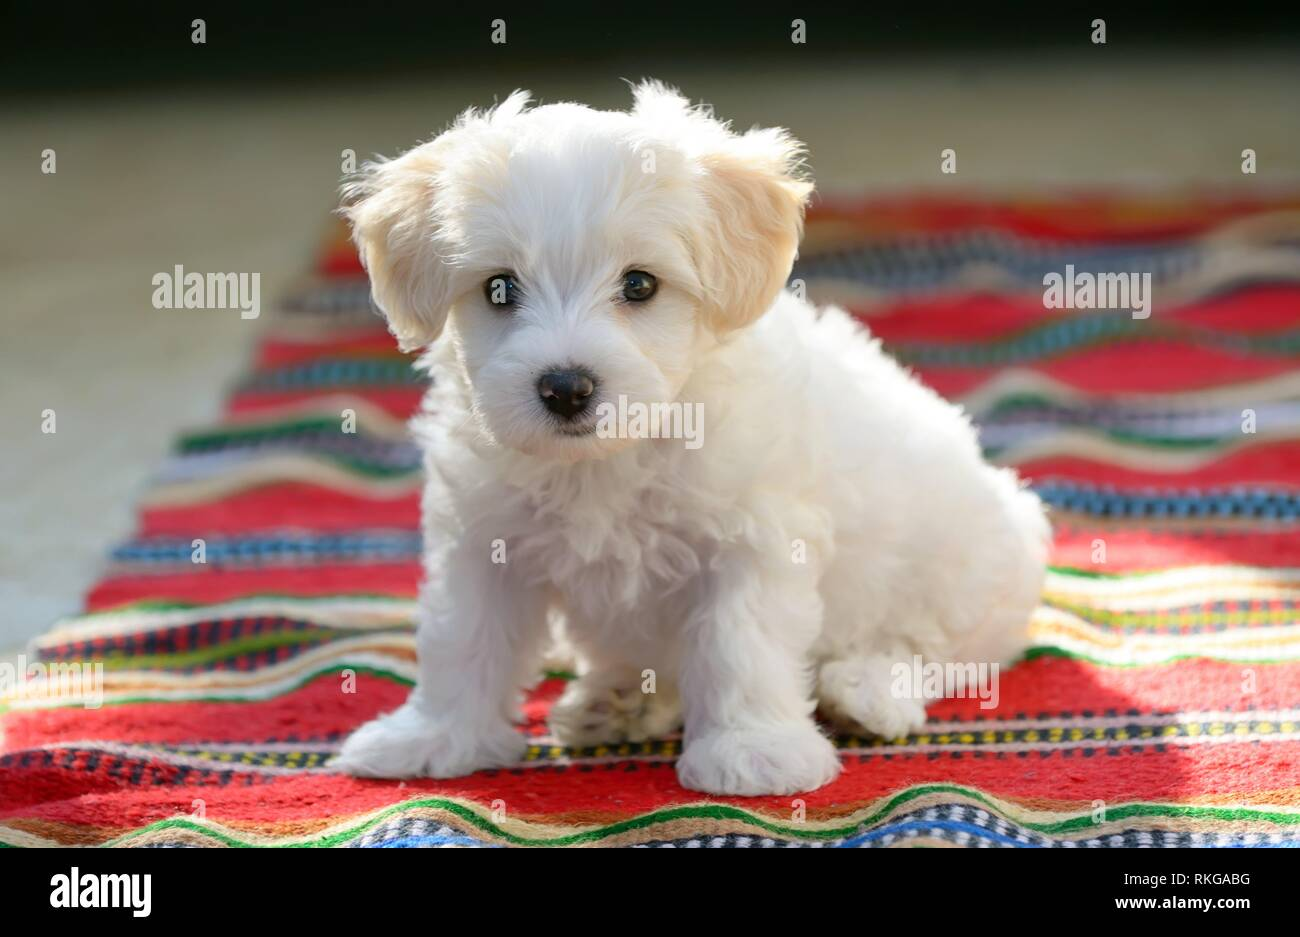 White puppy maltese dog sitting on red carpet. - Stock Image